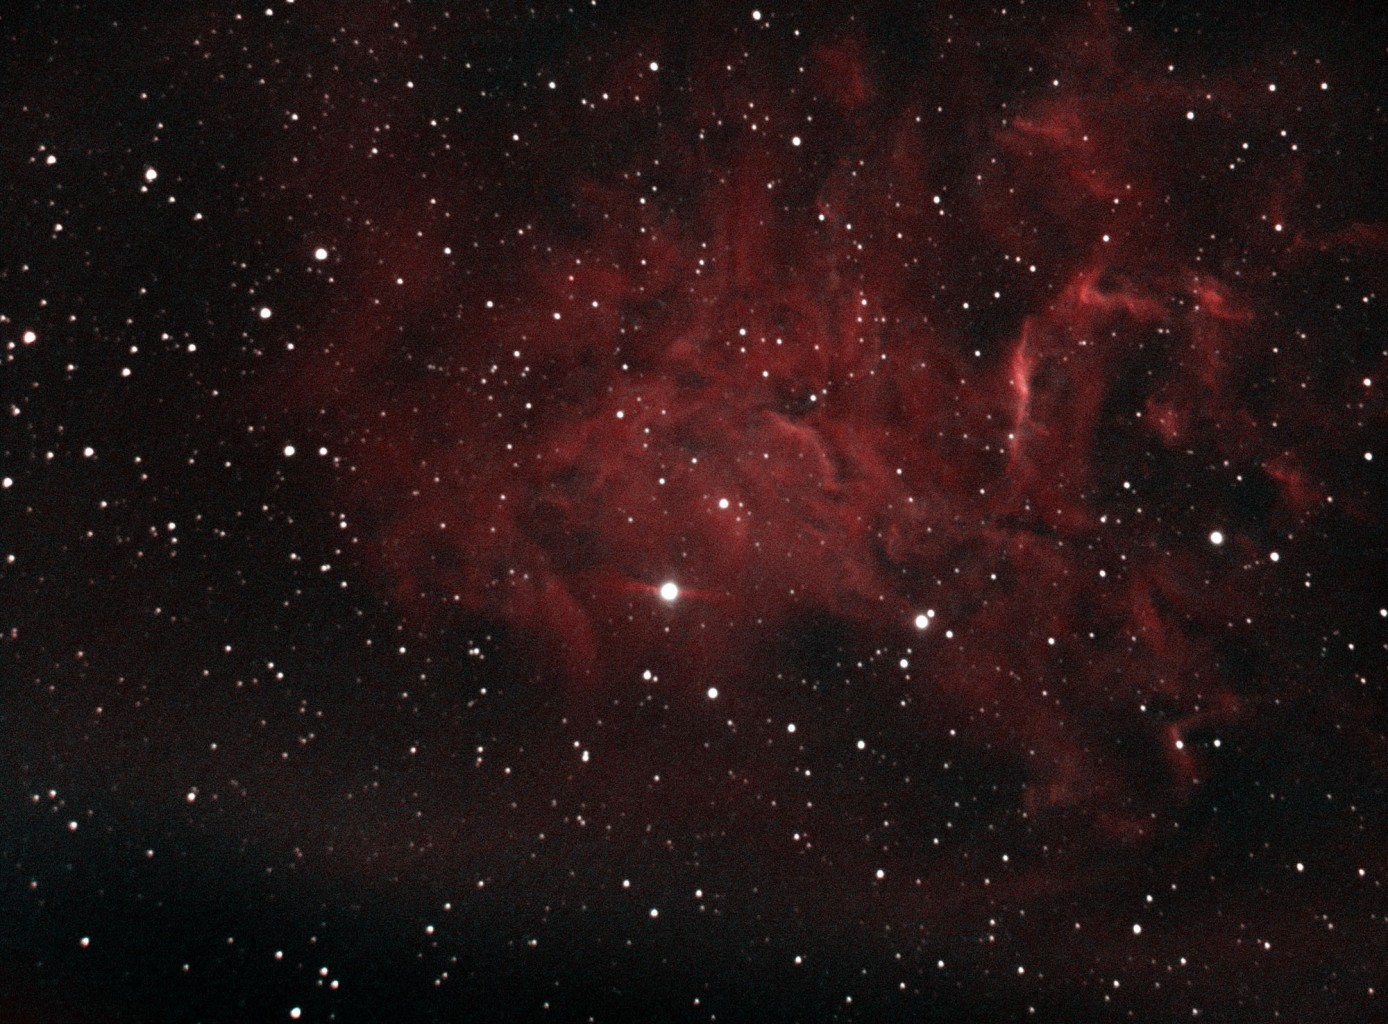 IC405_200406_region_parisienne_Laurent_Perrin.jpg